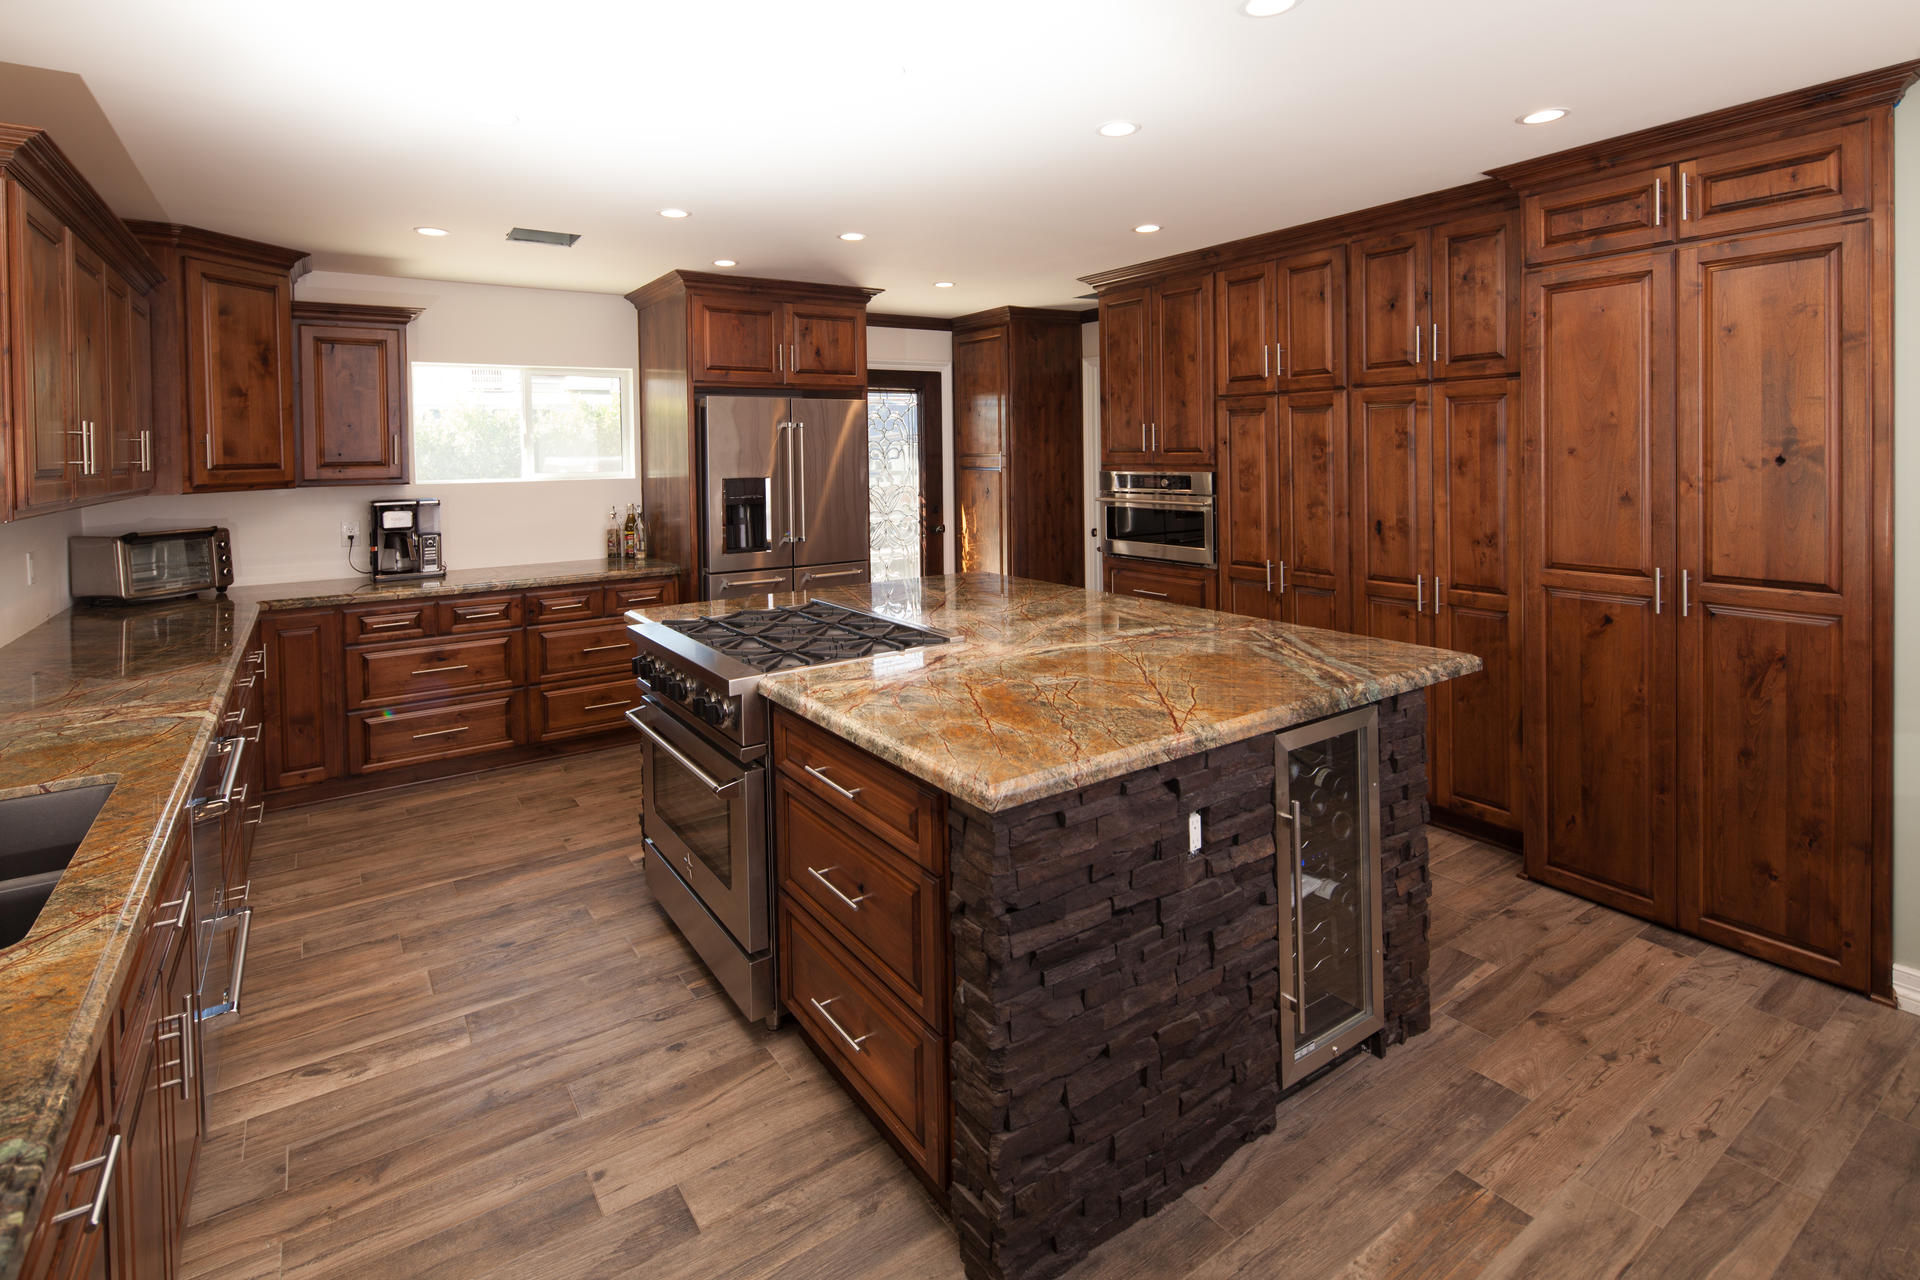 Rustic Alder Kitchen Cabinets With Traditional Style Details Project Remodel In Sun Valley Ca